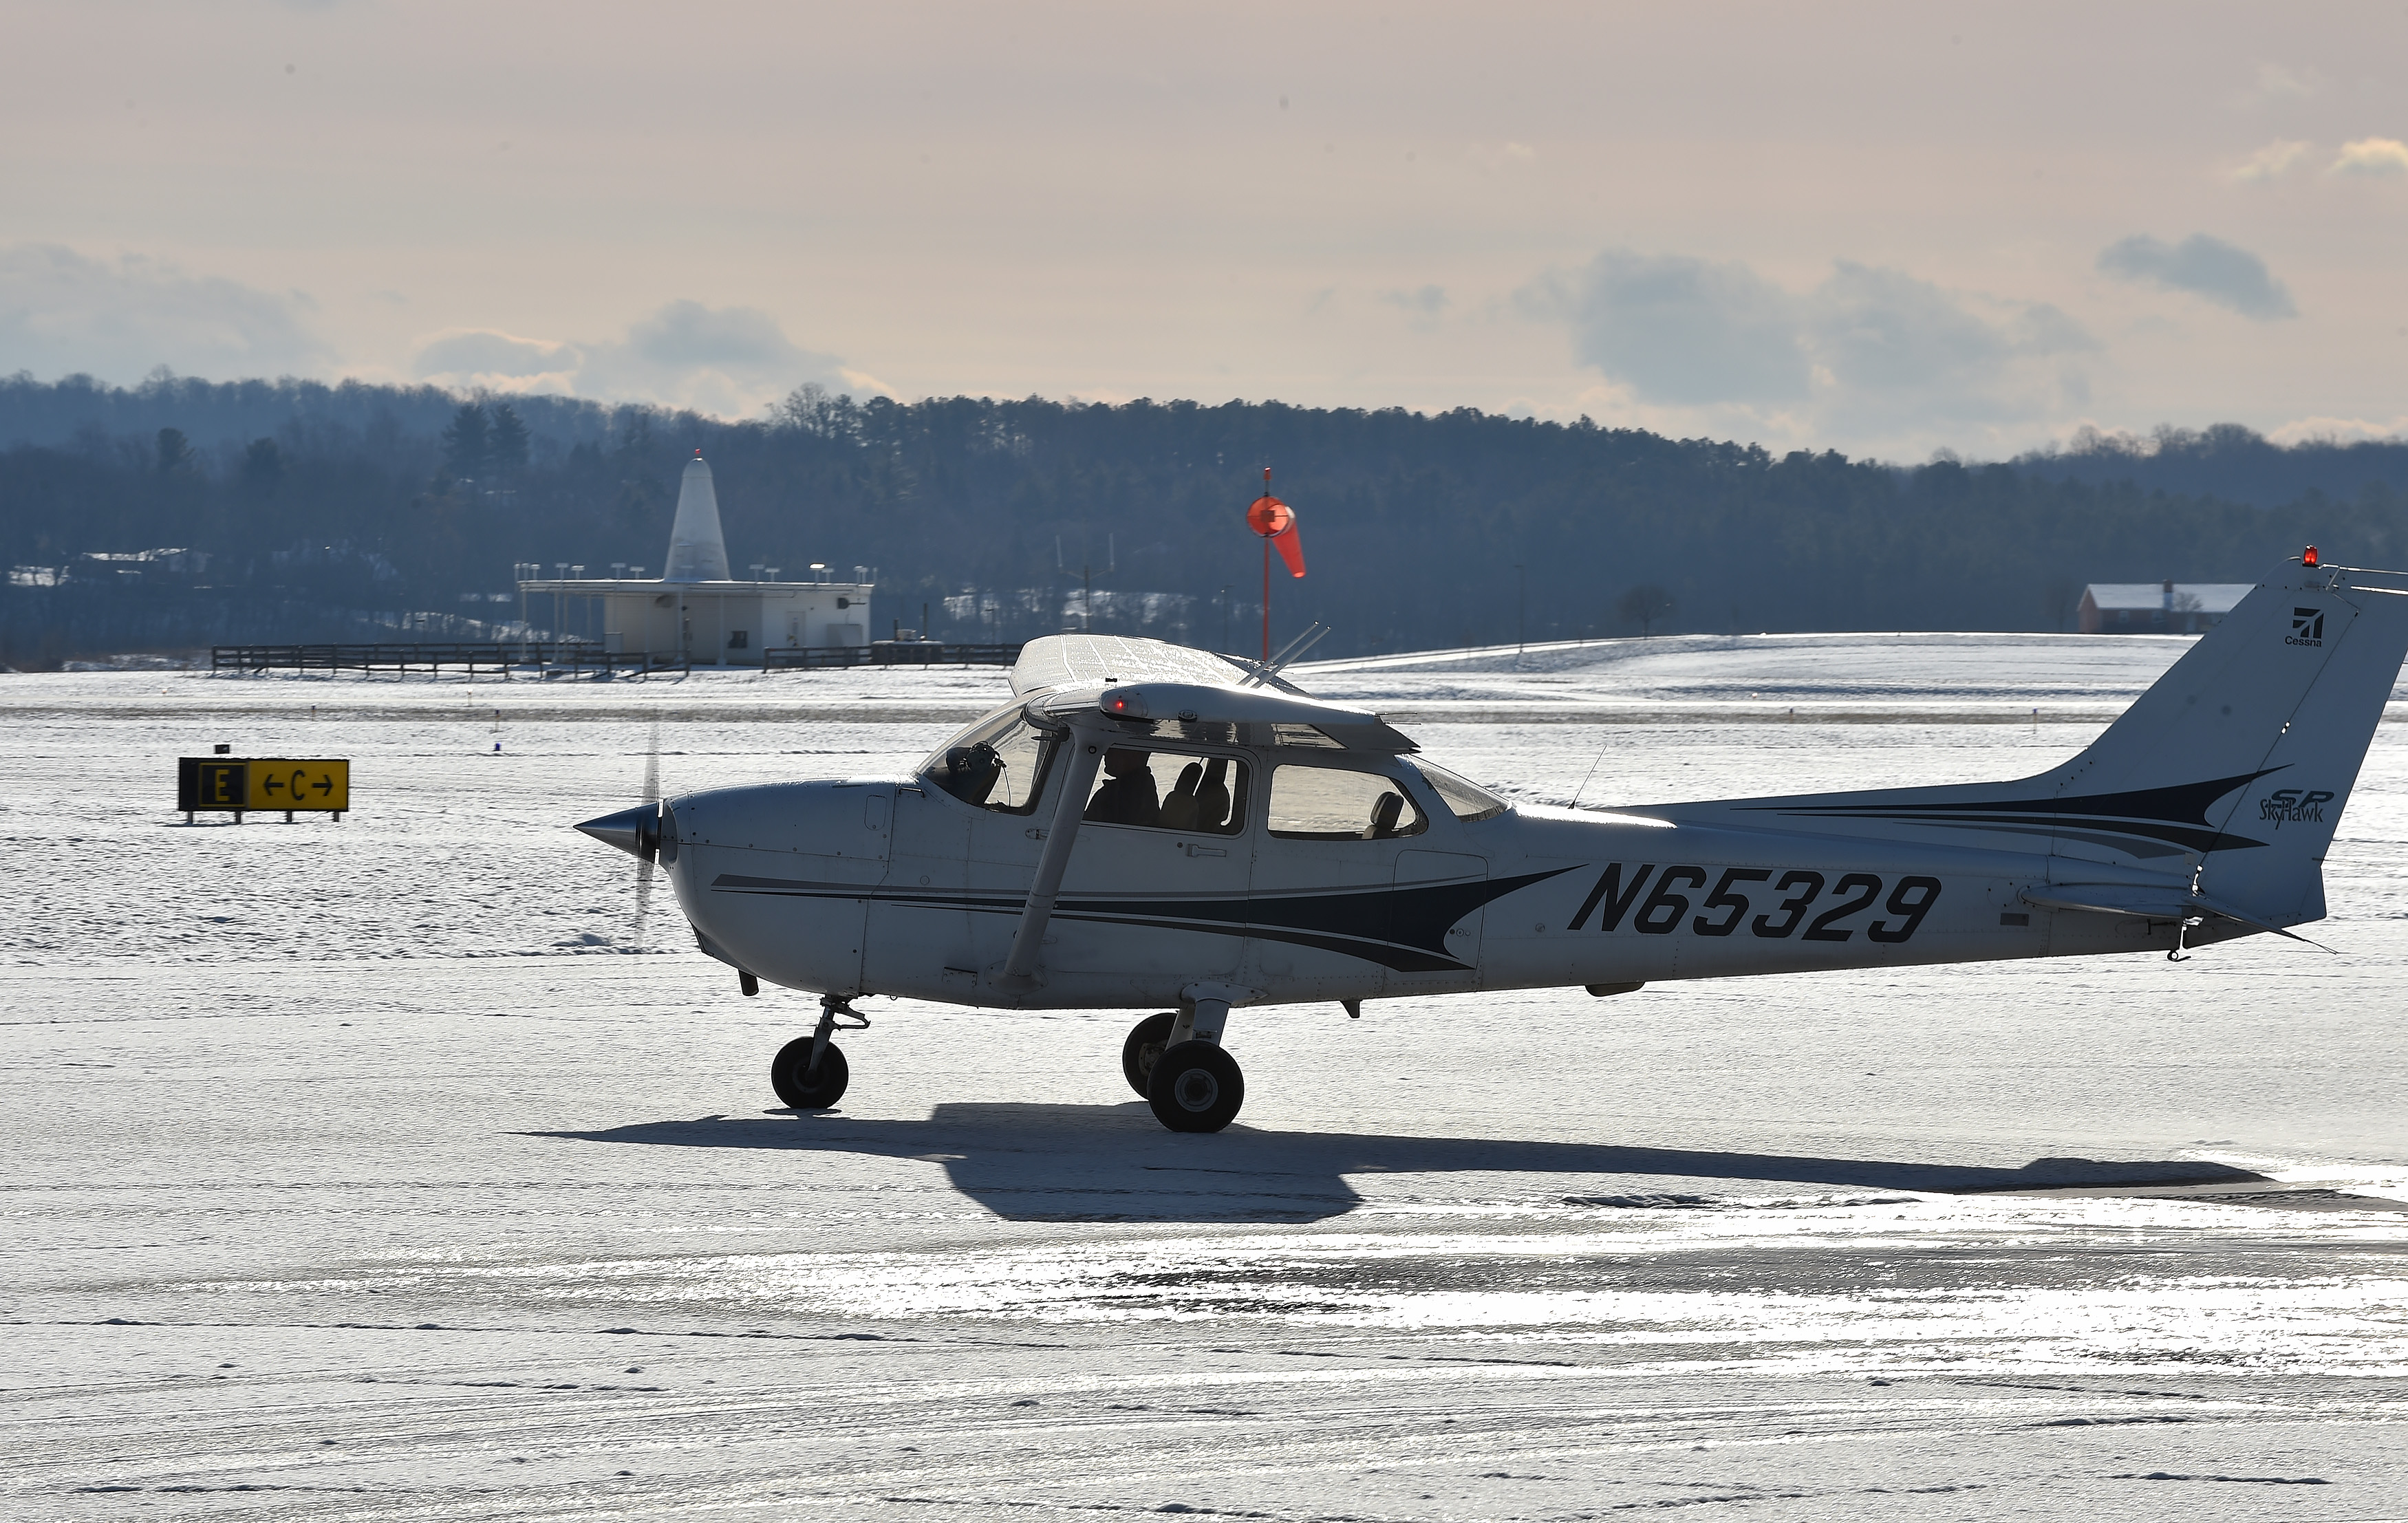 Winter flying brings special challenges in the air and on the ground. Photo by David Tulis.